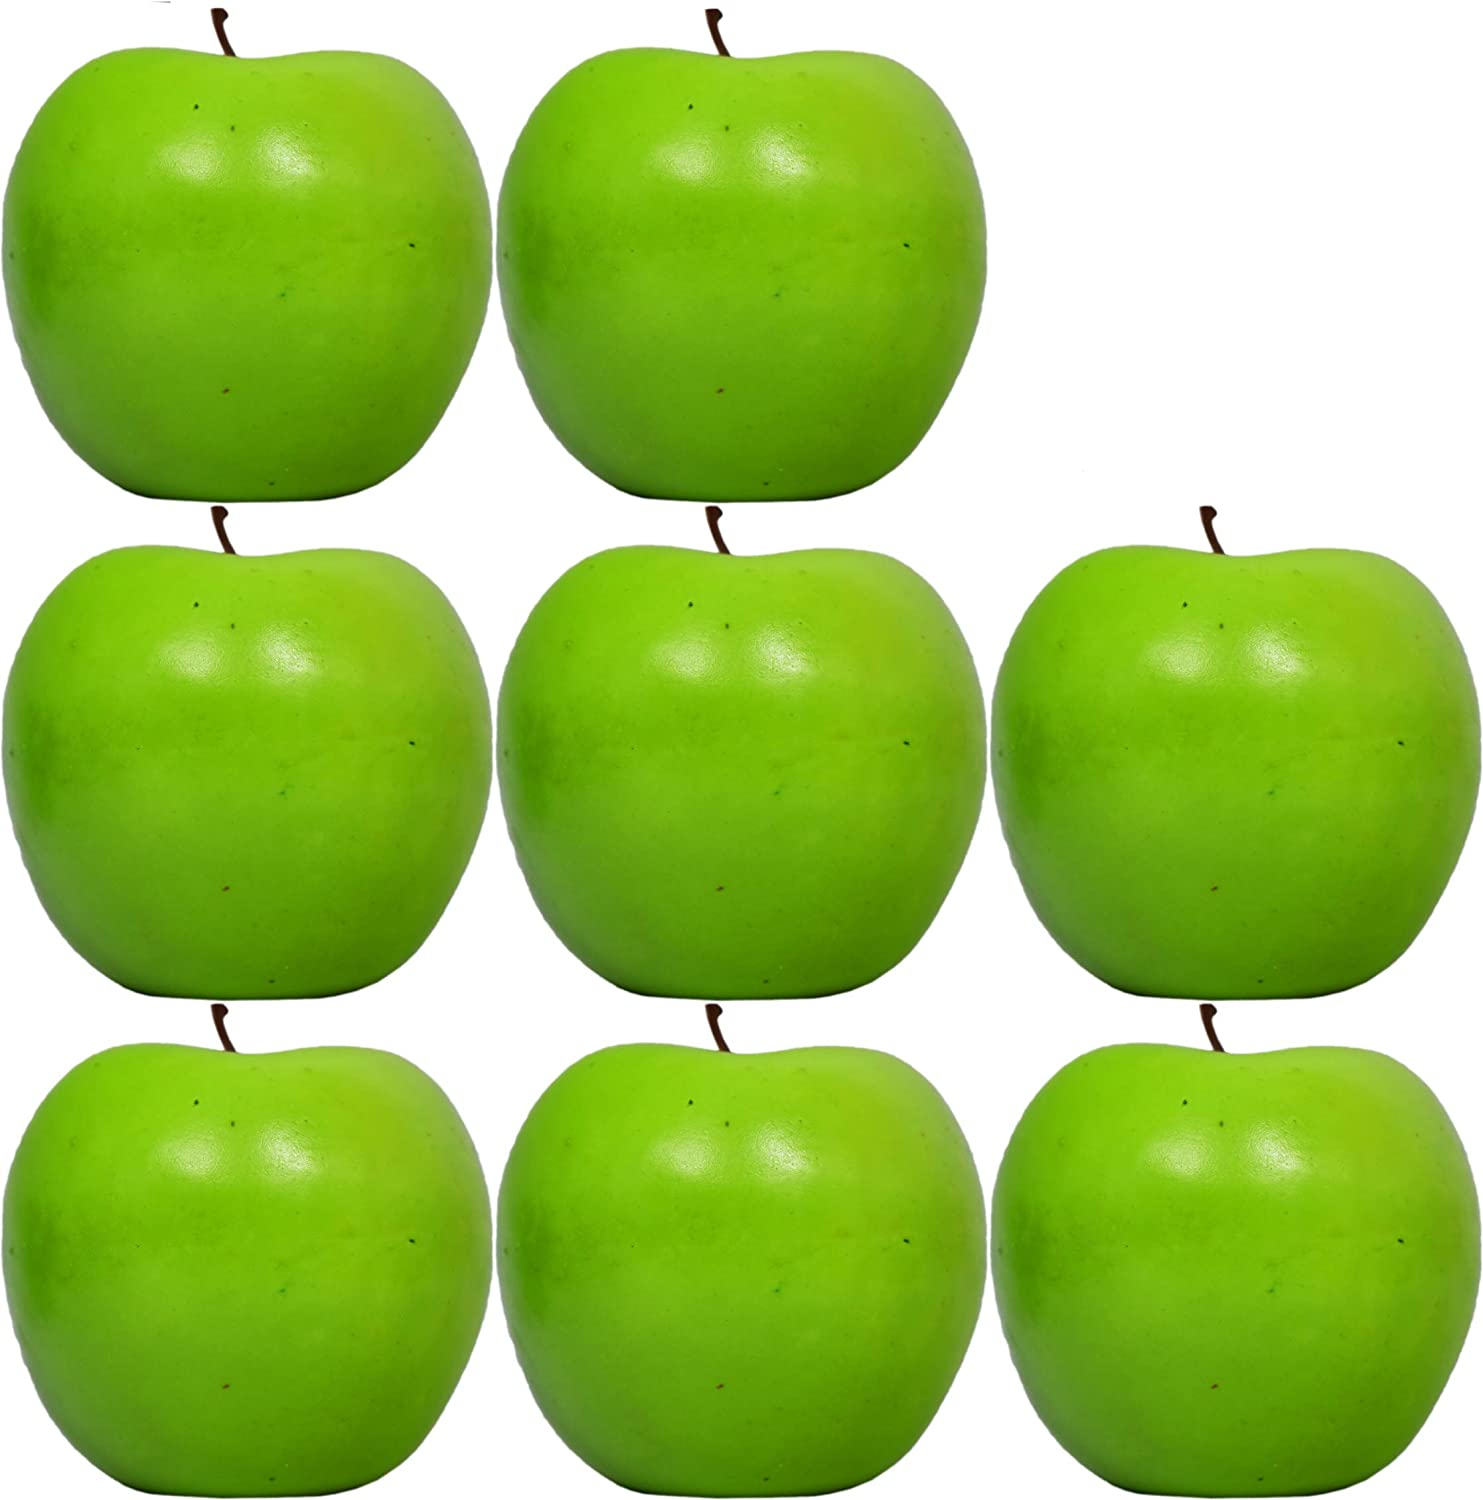 "Set of 8 Decorative Life Size Faux Green Apples - Great for Decorating your Home, Creating a Store Display, and Photo Props - Realistically Colored and Sized Fruit - Measures 2.5"" x 2.75(Green Apples)"